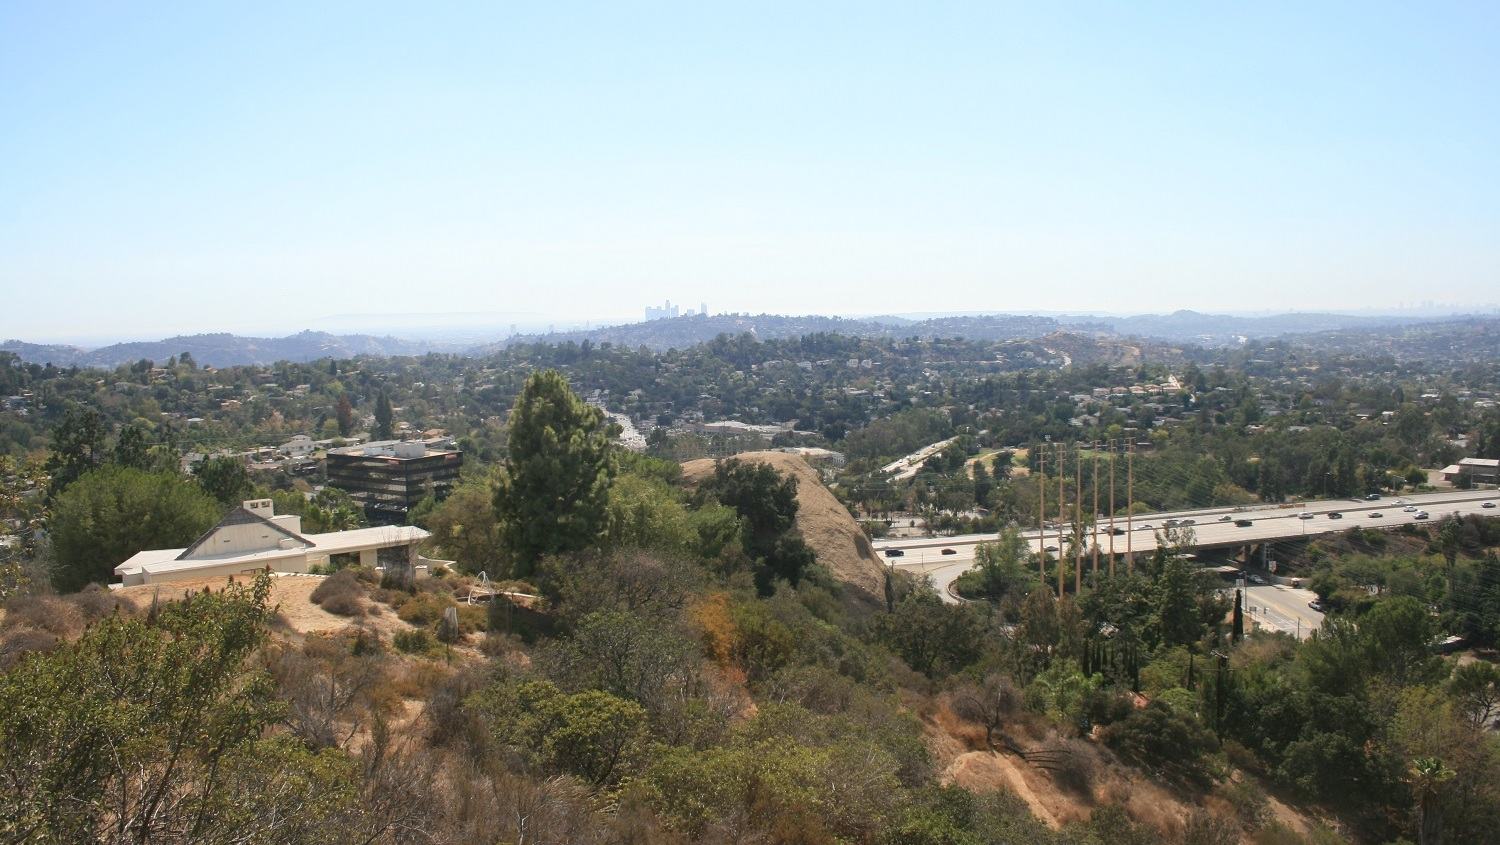 View from Eagle Rock Canyon Trail, Los Angeles